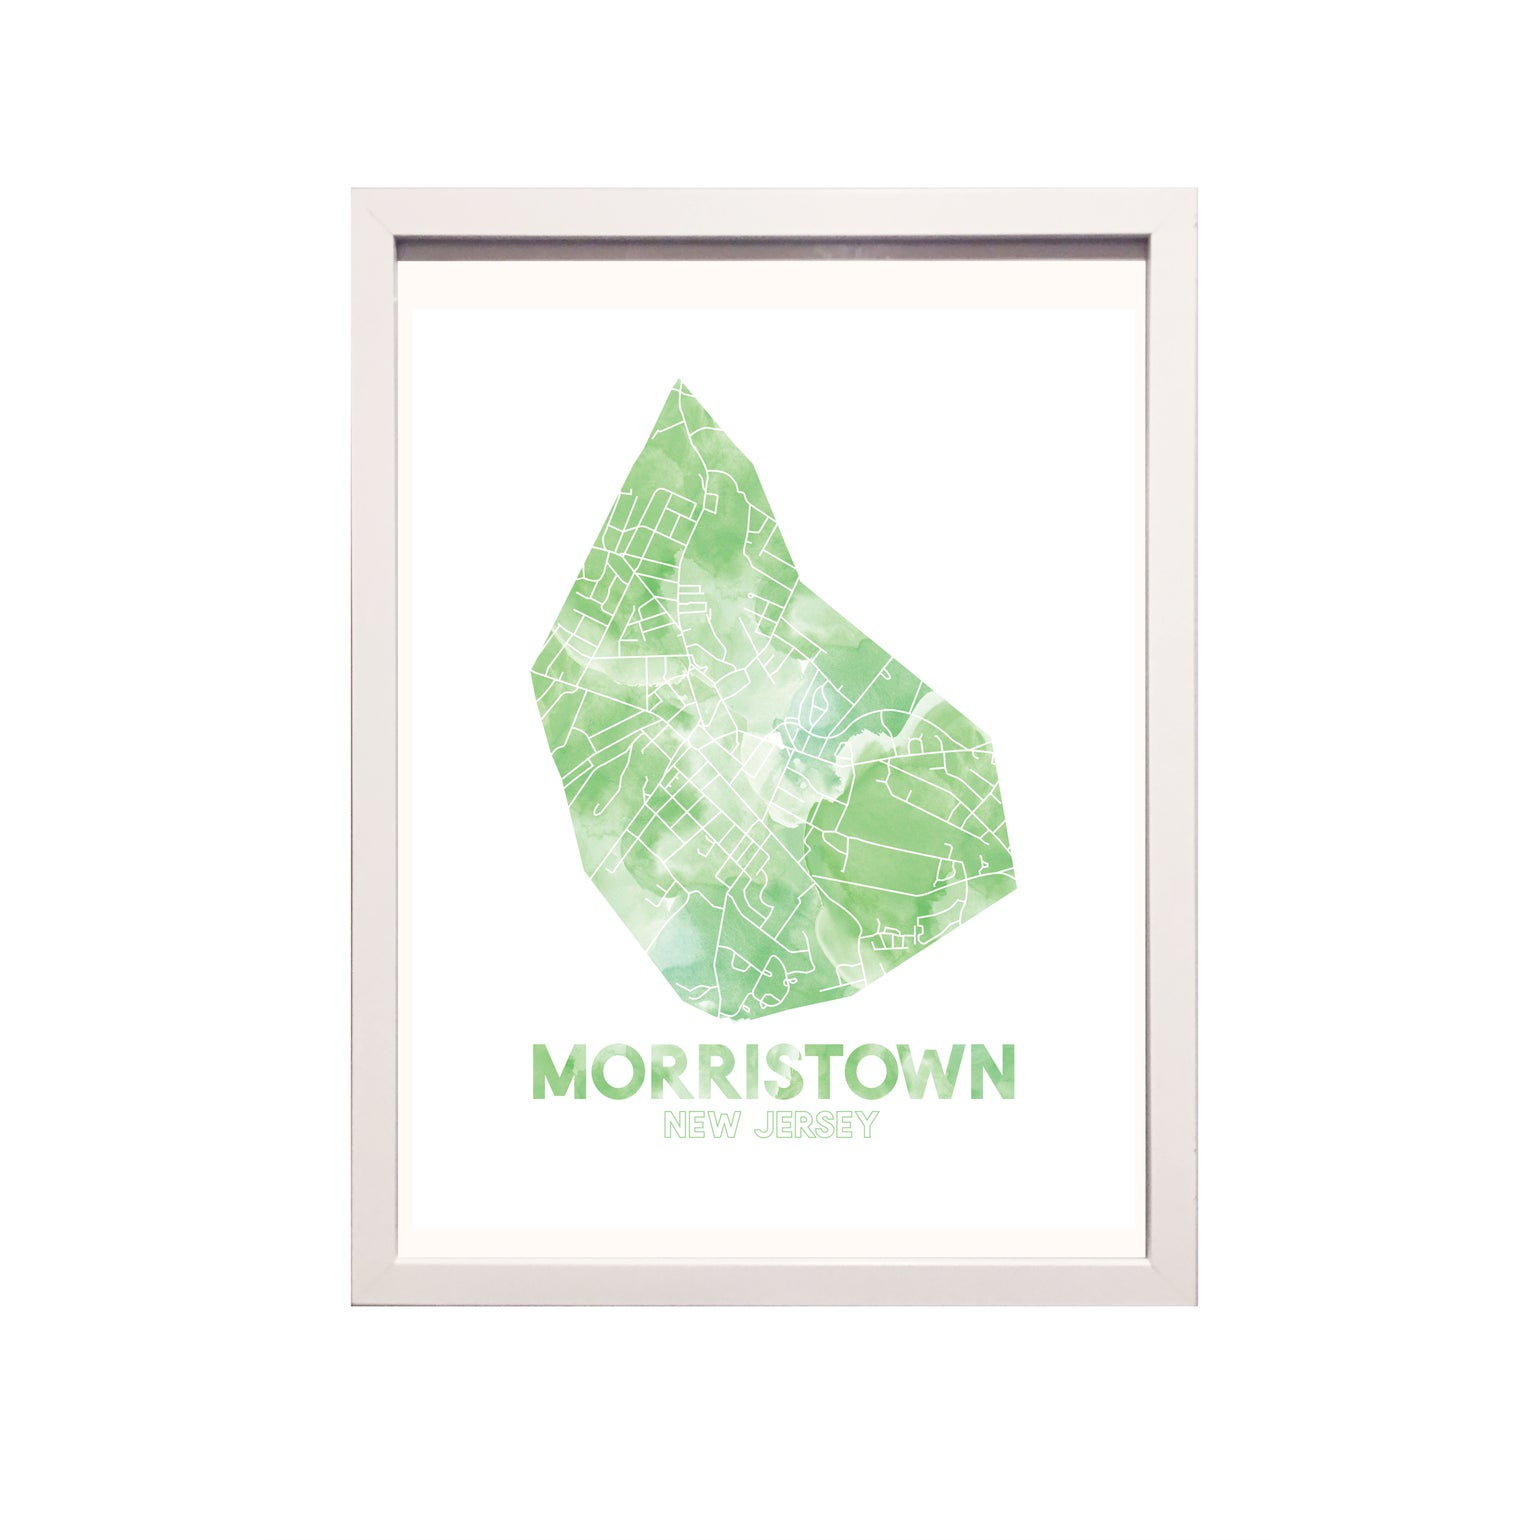 Image of Morristown NJ Art Print